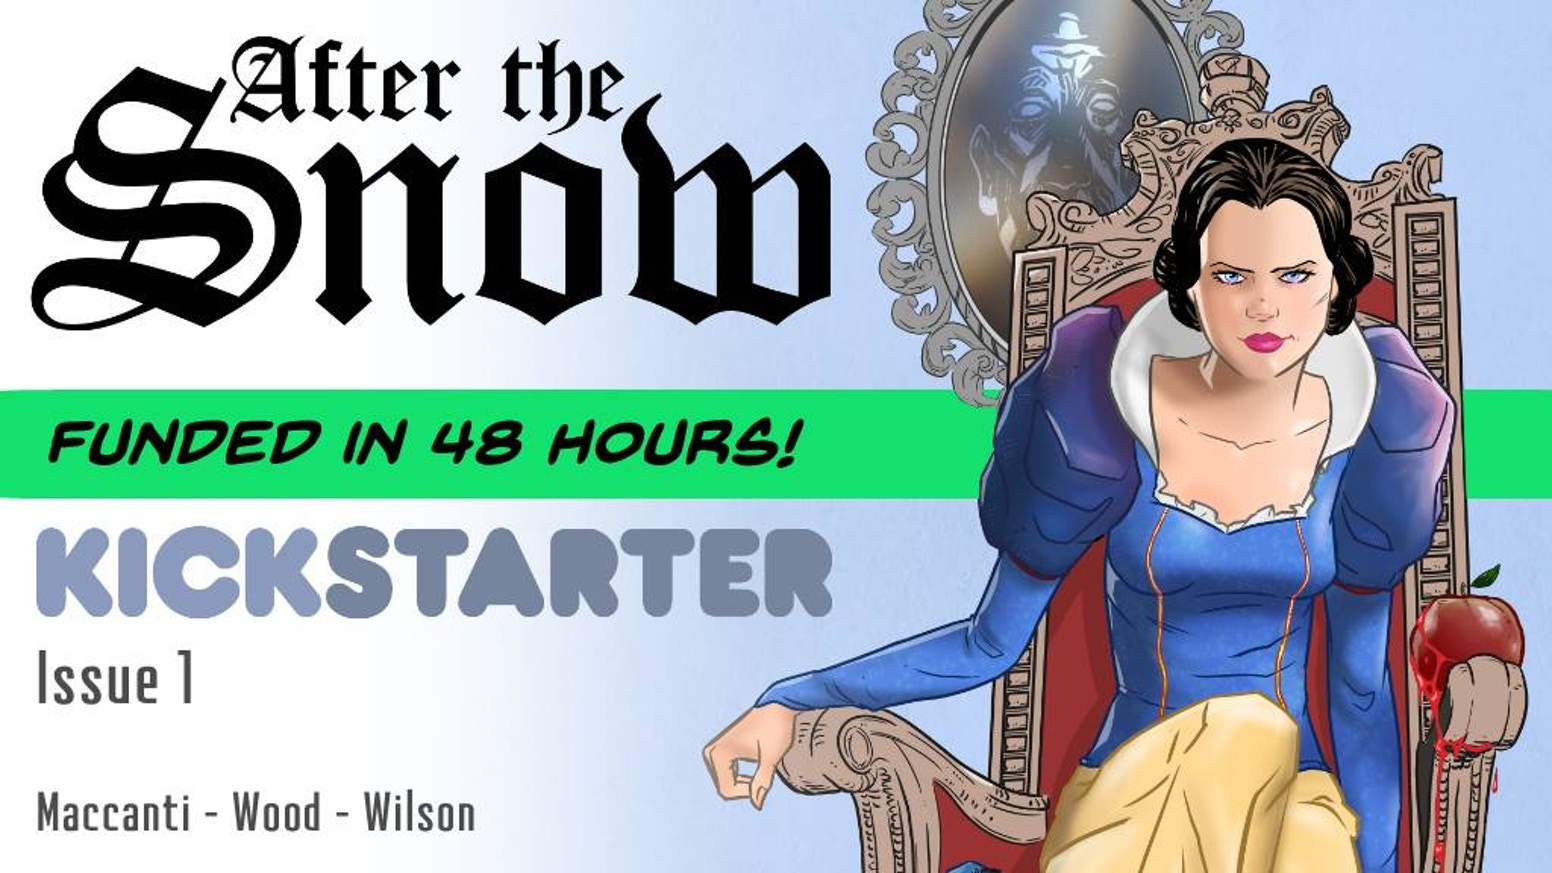 'After the Snow' is the sequel to Snow White. A 6 issue comic that shows readers that 'Happily Ever After' isn't where the story ends.